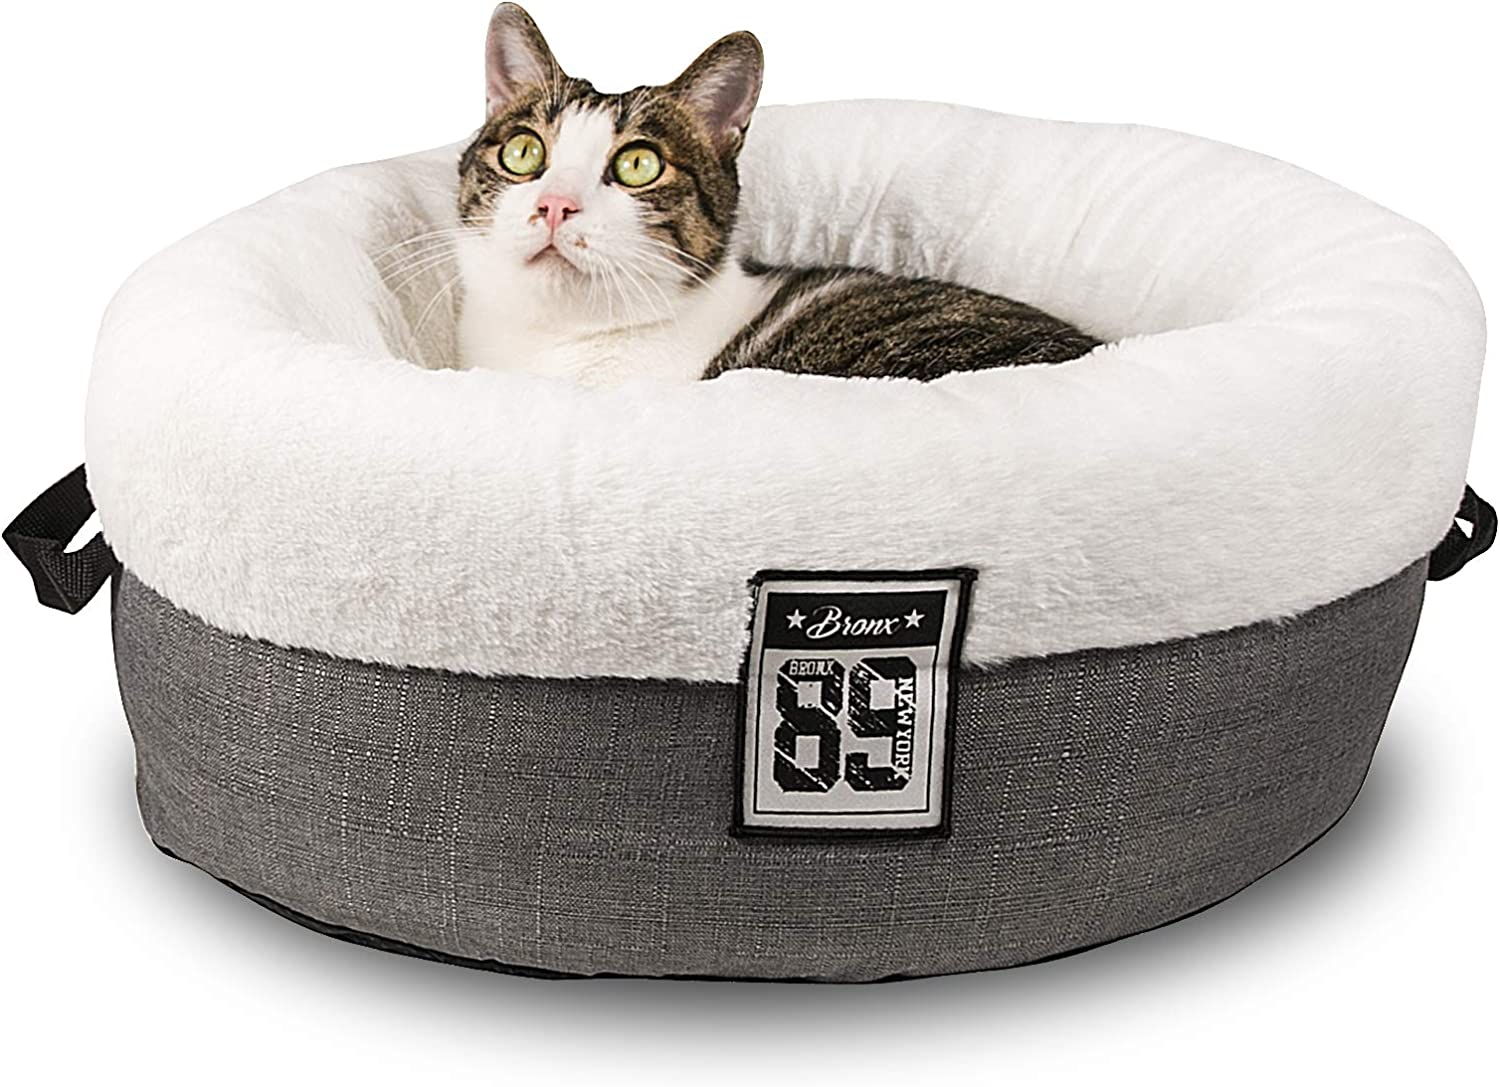 Qucey Cat Bed for Indoor Cats, 20 inches Round Count Cat and Dog Bed for Cats and Small Dogs, Machine Washable & Anti-Slip Bottom